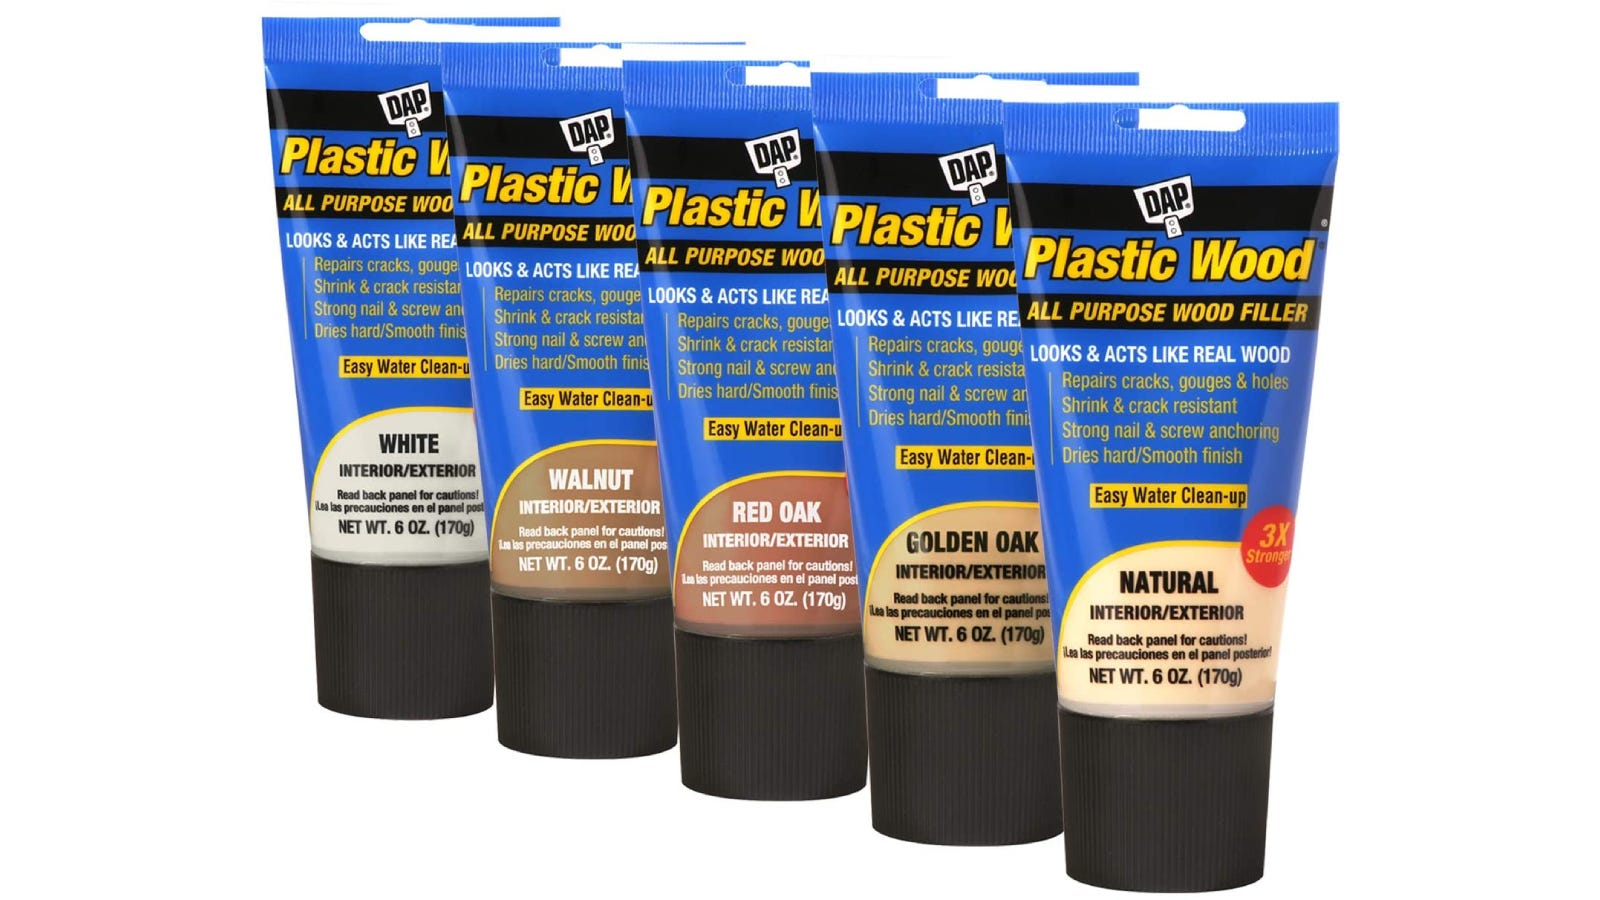 Five different tubes of DAP wood fillers for various colors/types of wood